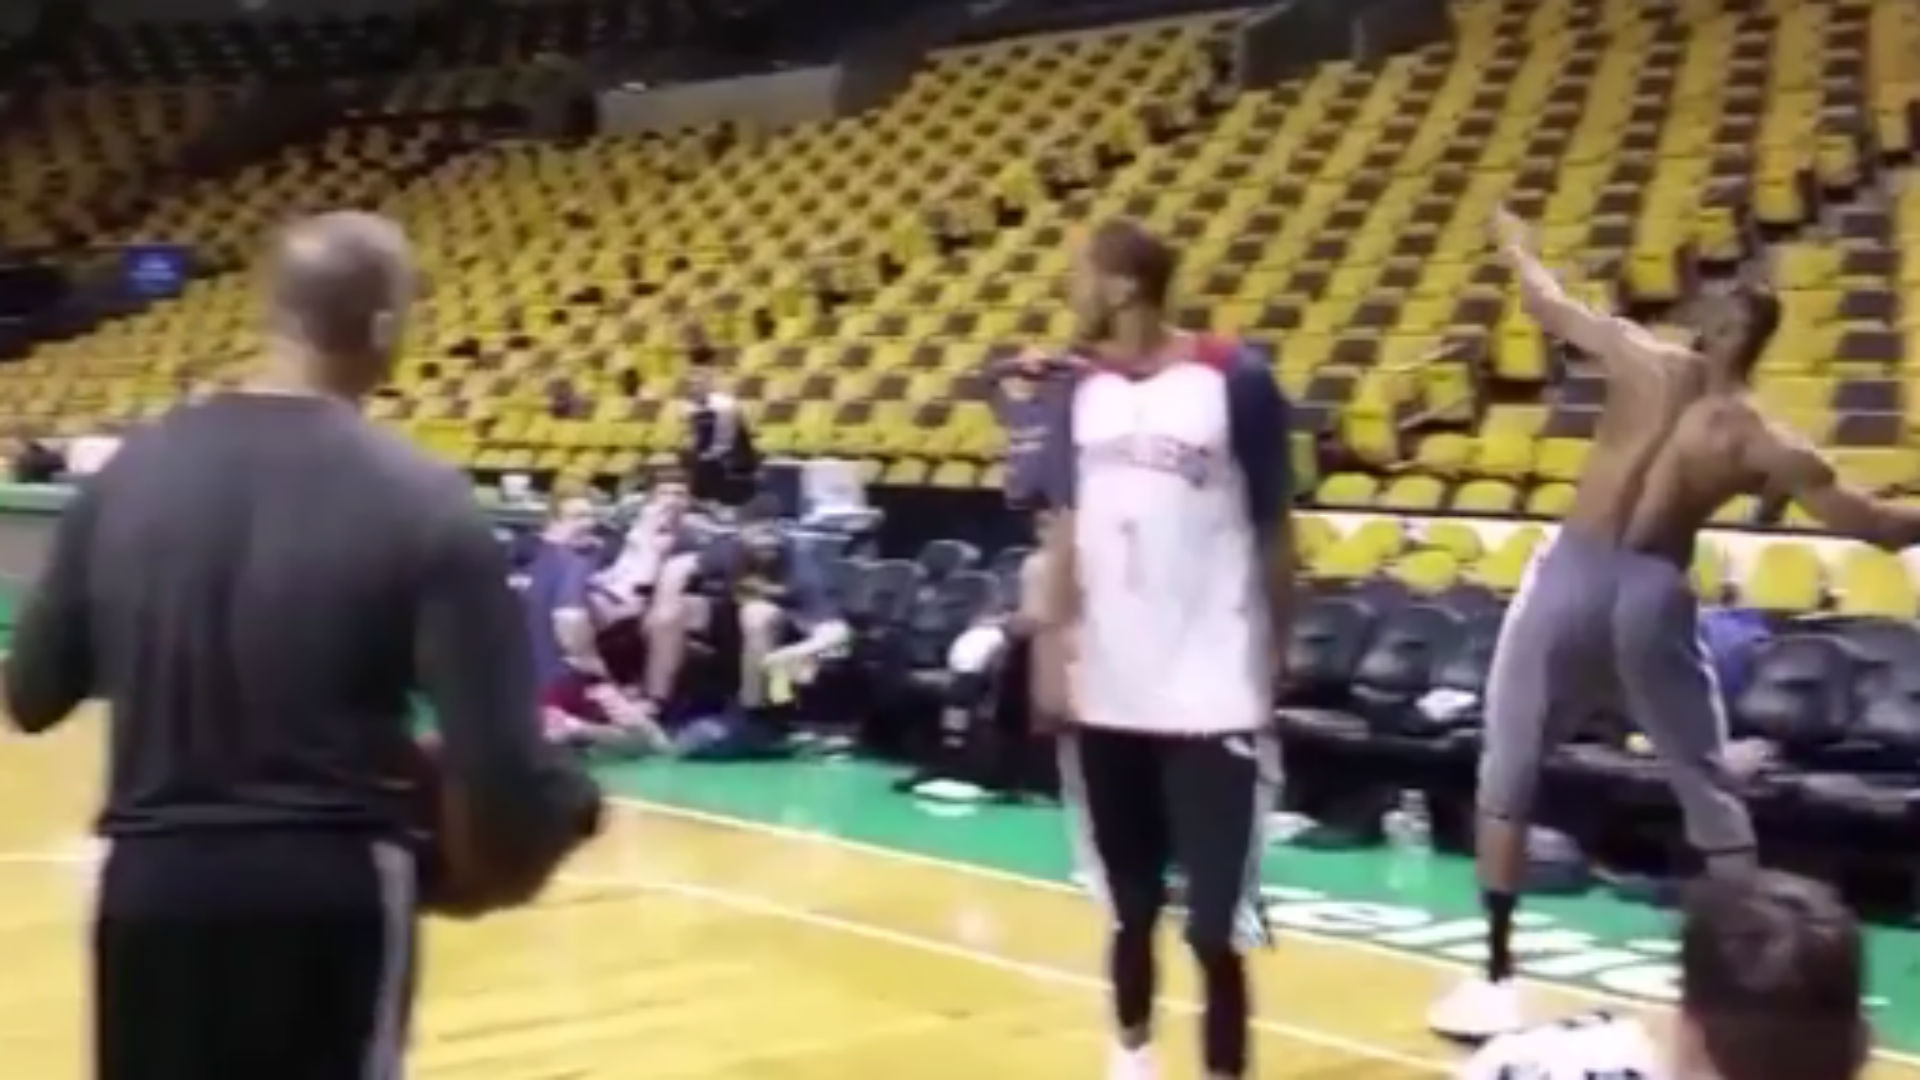 LeBron James hits insane full-court shot